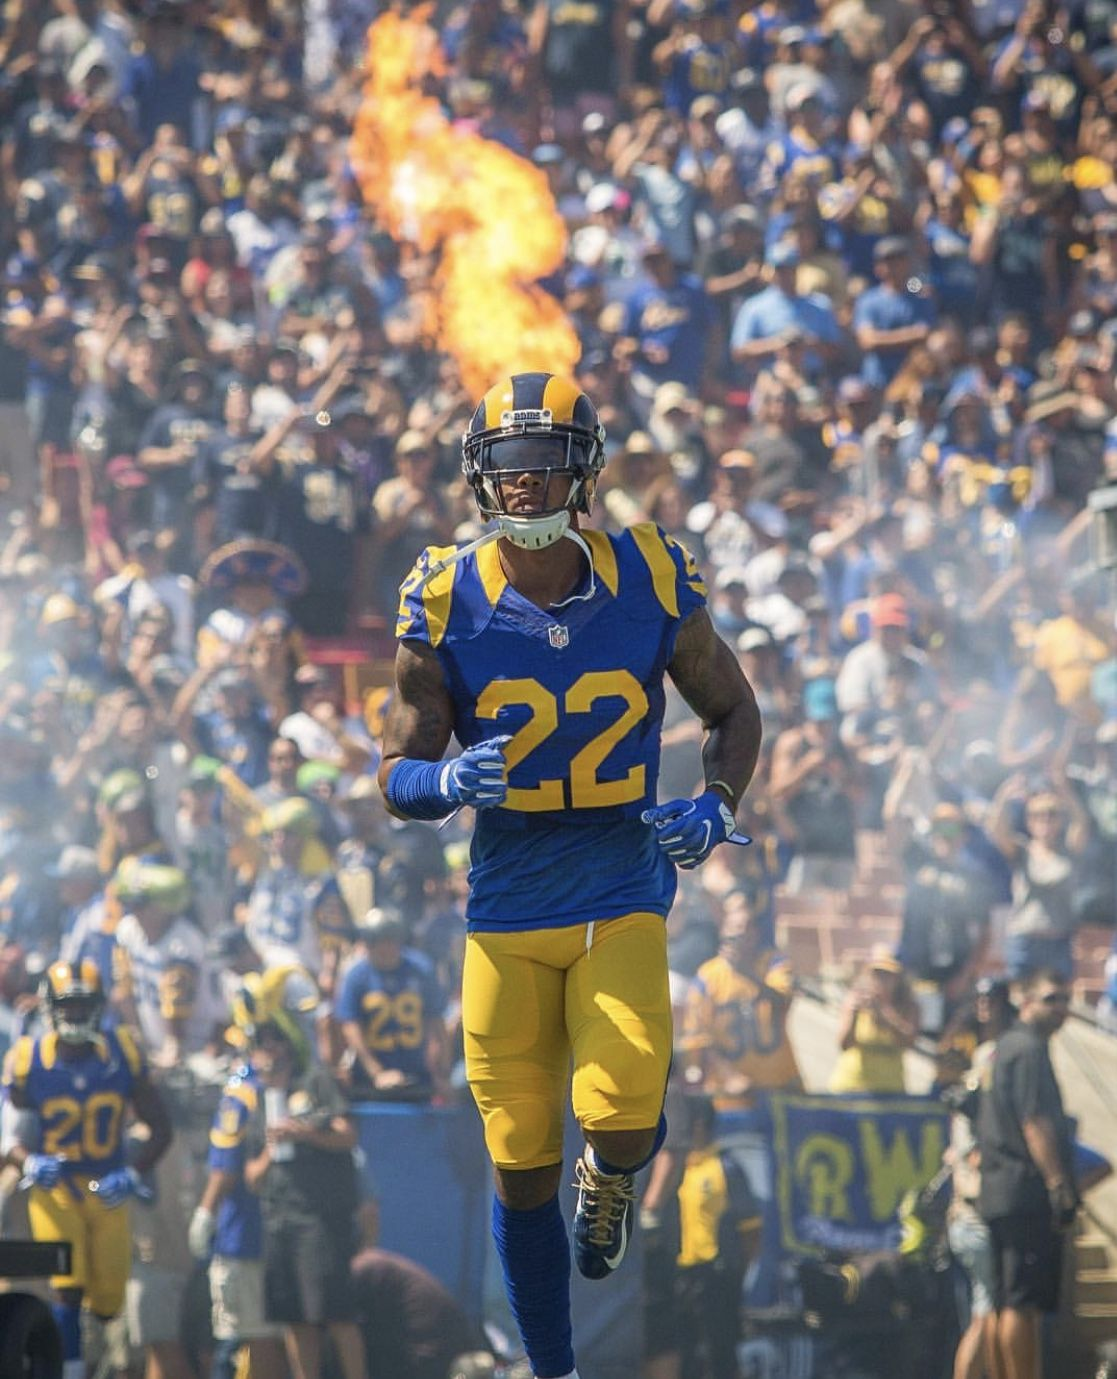 Pin by Ronnie Gallegos on Los Angeles Rams Rams football